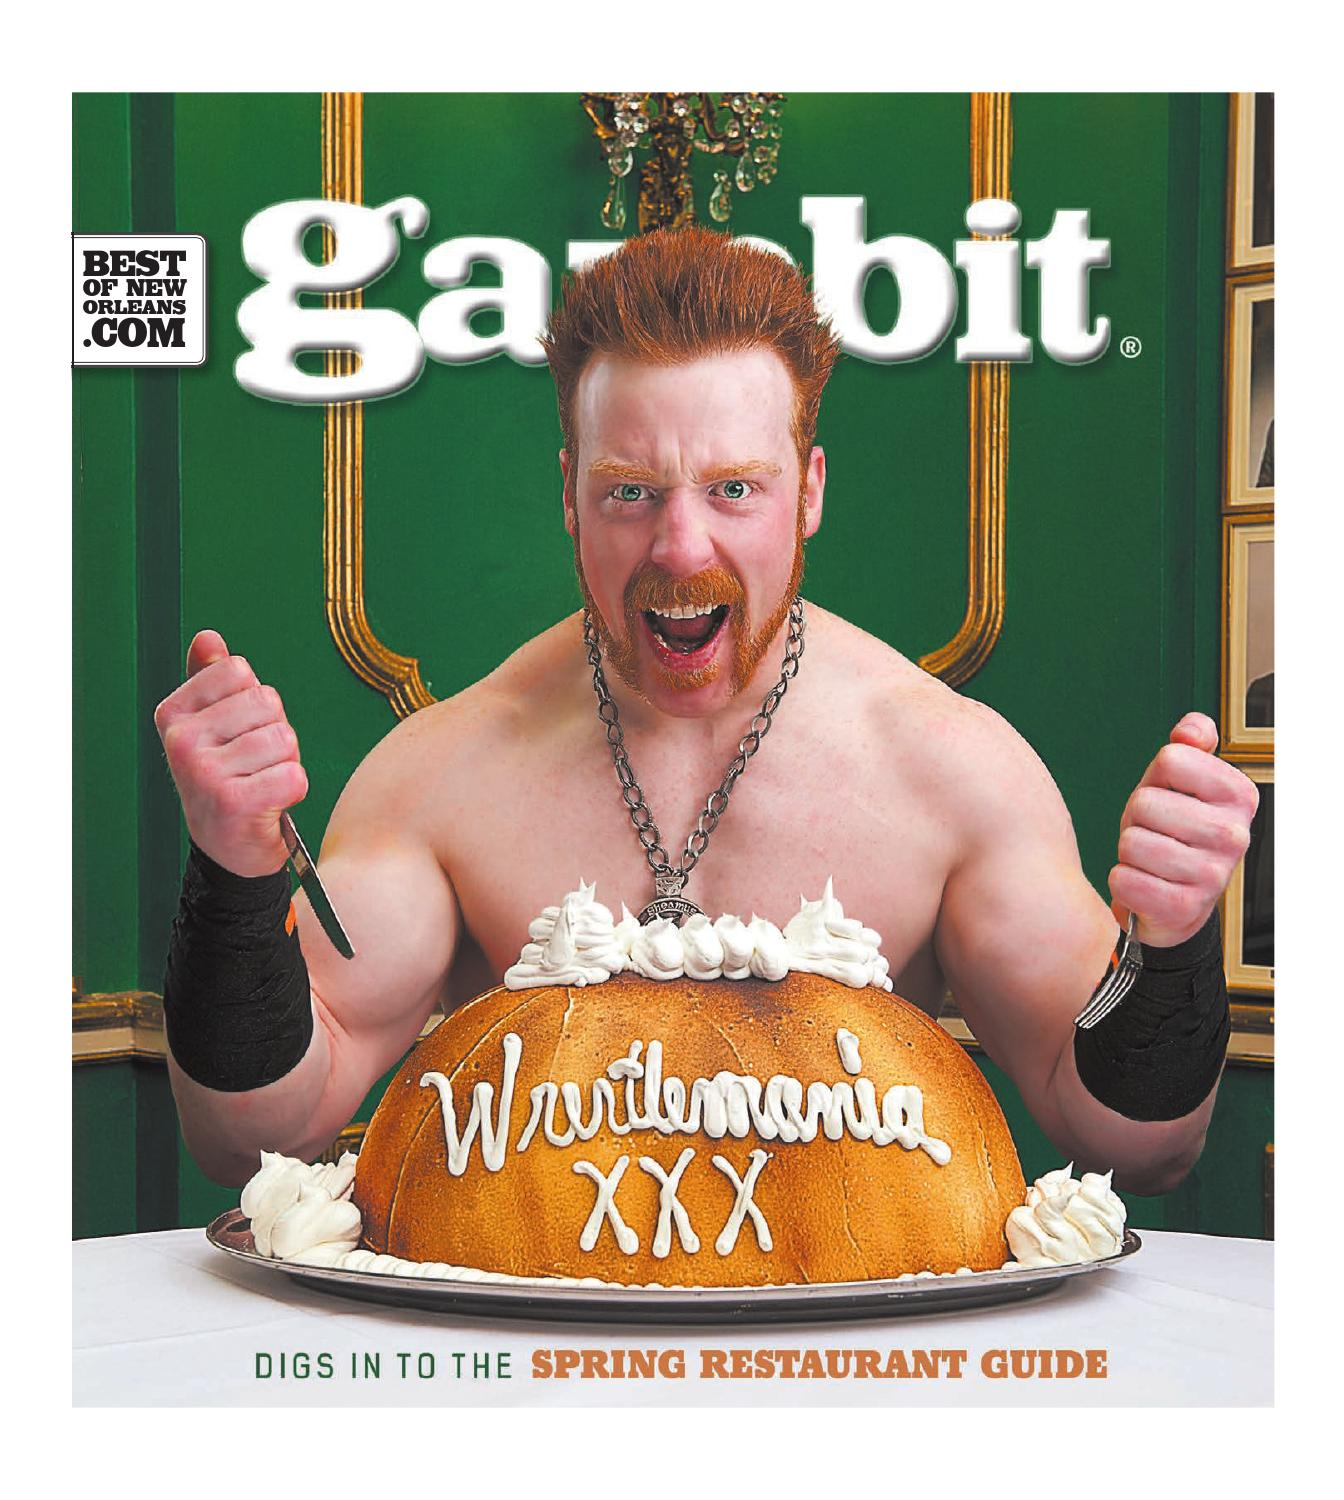 gambit new orleans april 1, 2014 by gambit new orleans issuuLe Specs Hallo Macarena Sirup Tort Gold Revo Spiegel P 780 #7